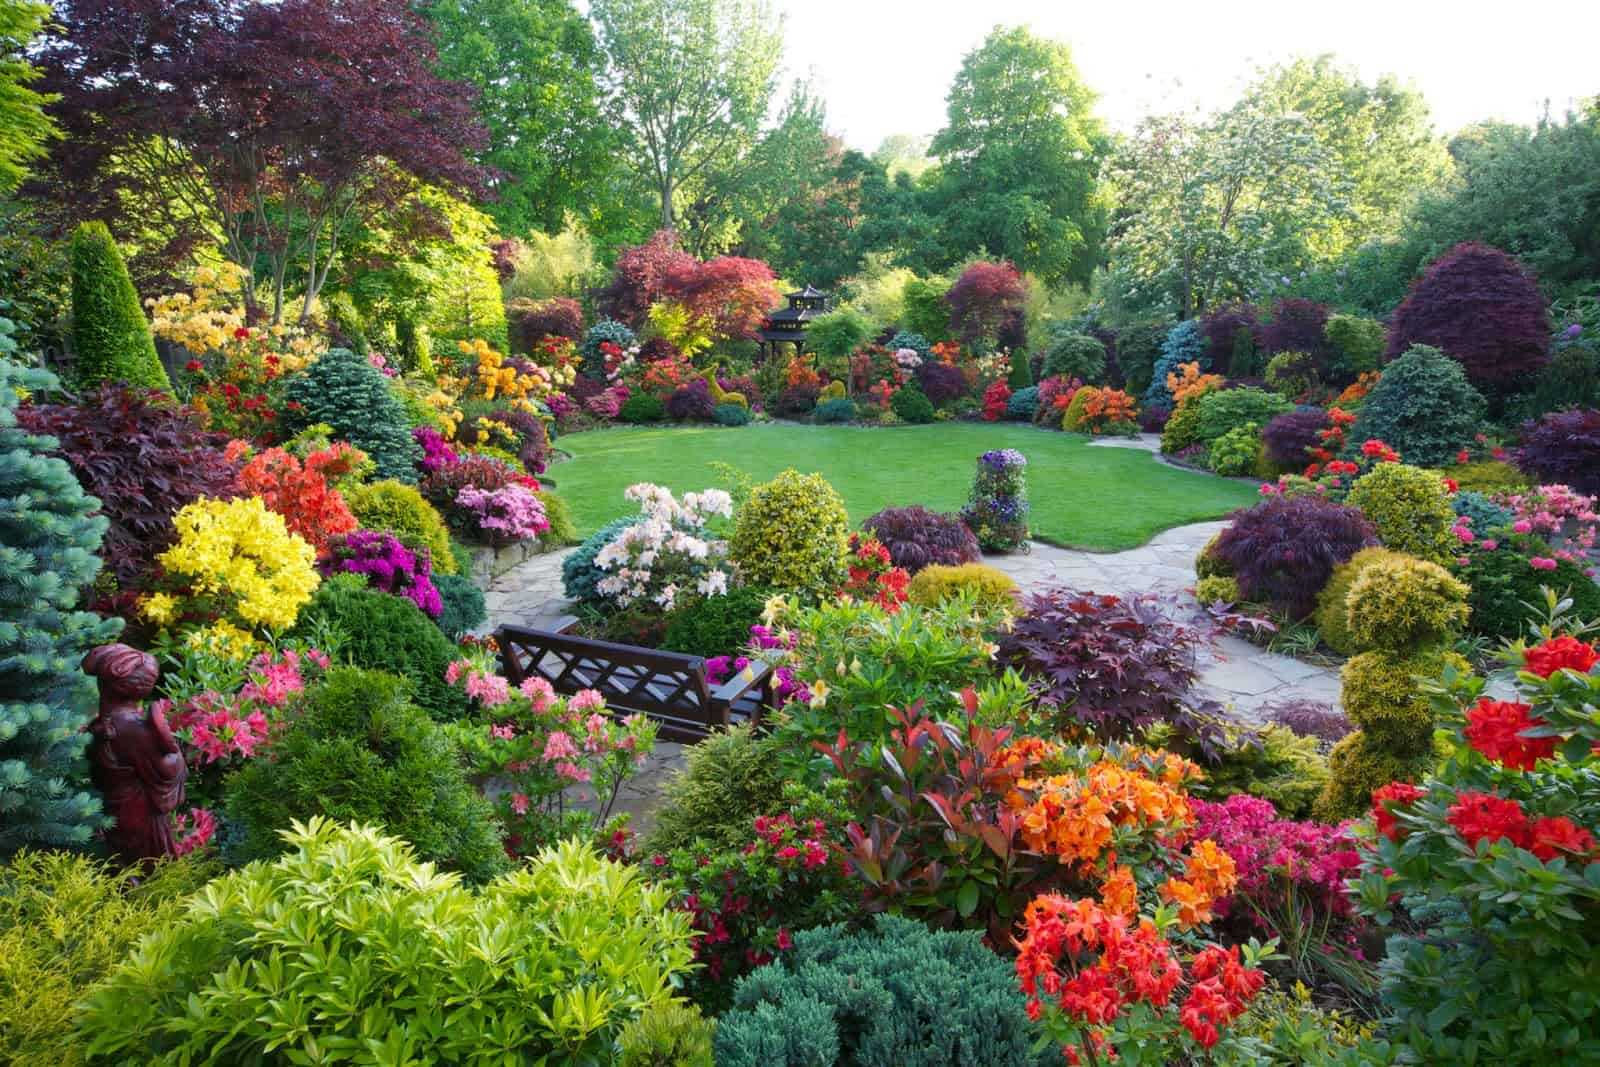 Large Flower Garden Ideas Of 13 Of The Most Beautifully Designed Flower Gardens In The